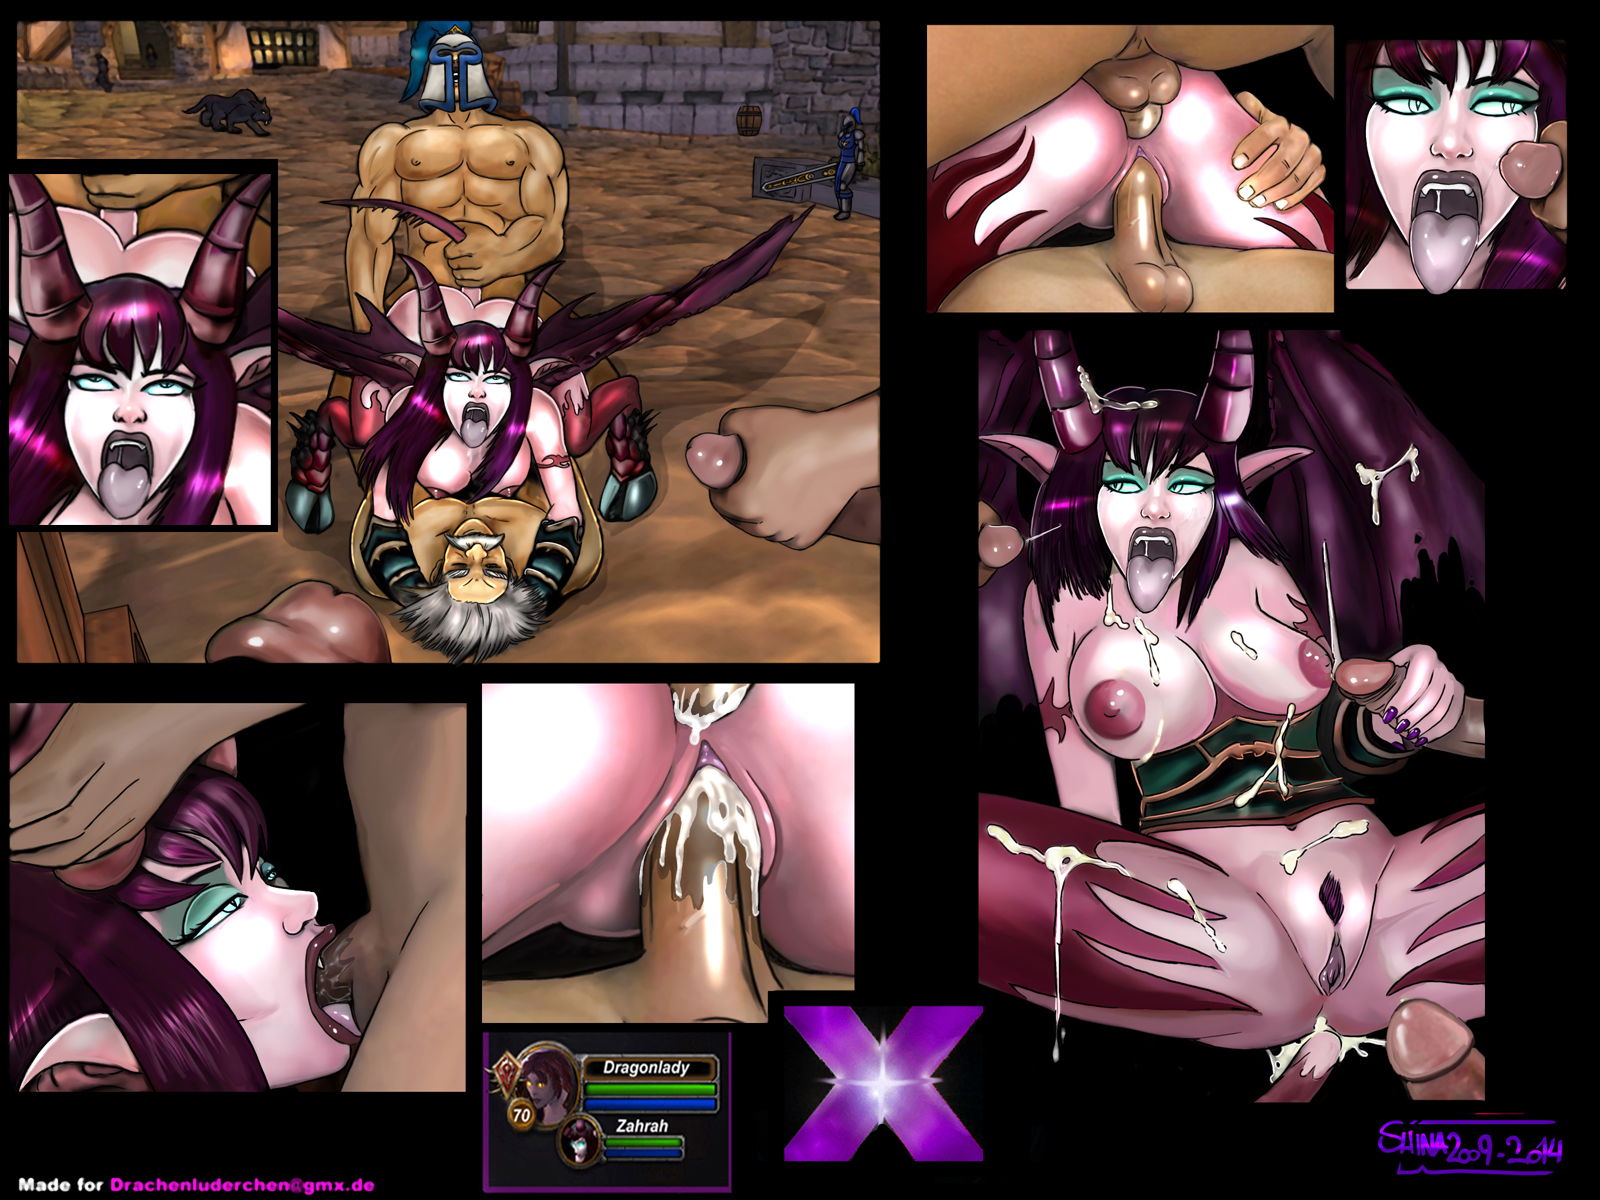 Xvideo porno world of warcraft porn images